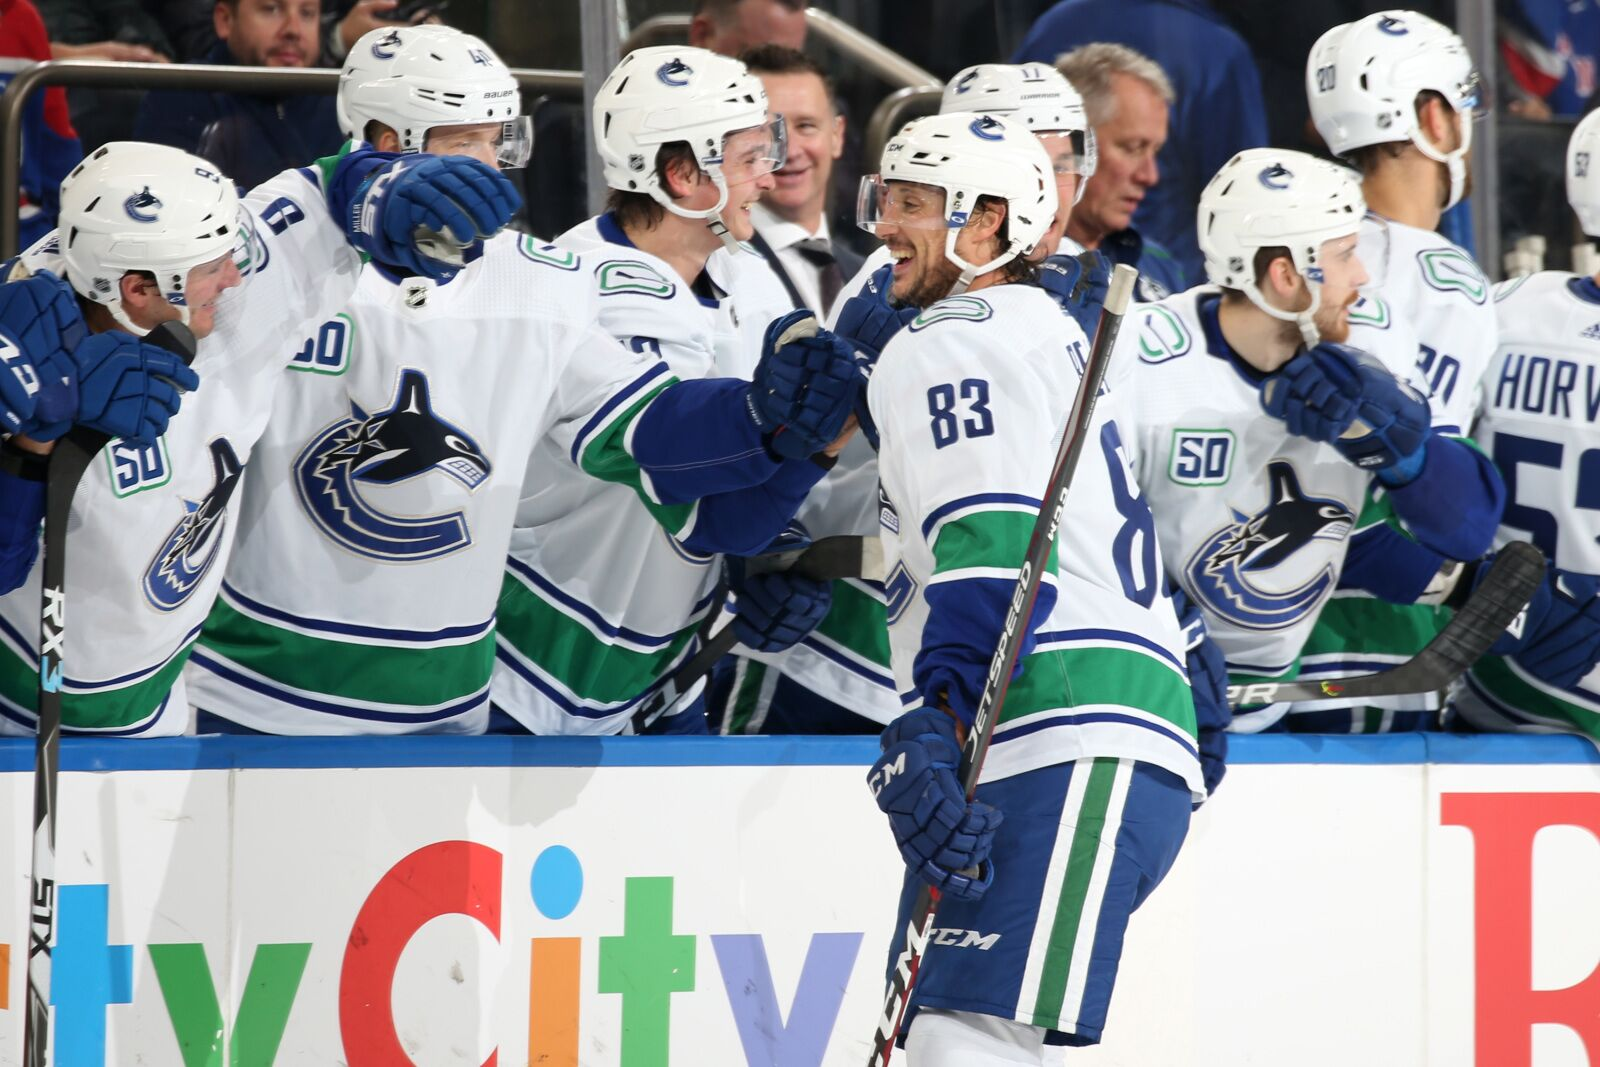 Vancouver Canucks need to be taken more seriously